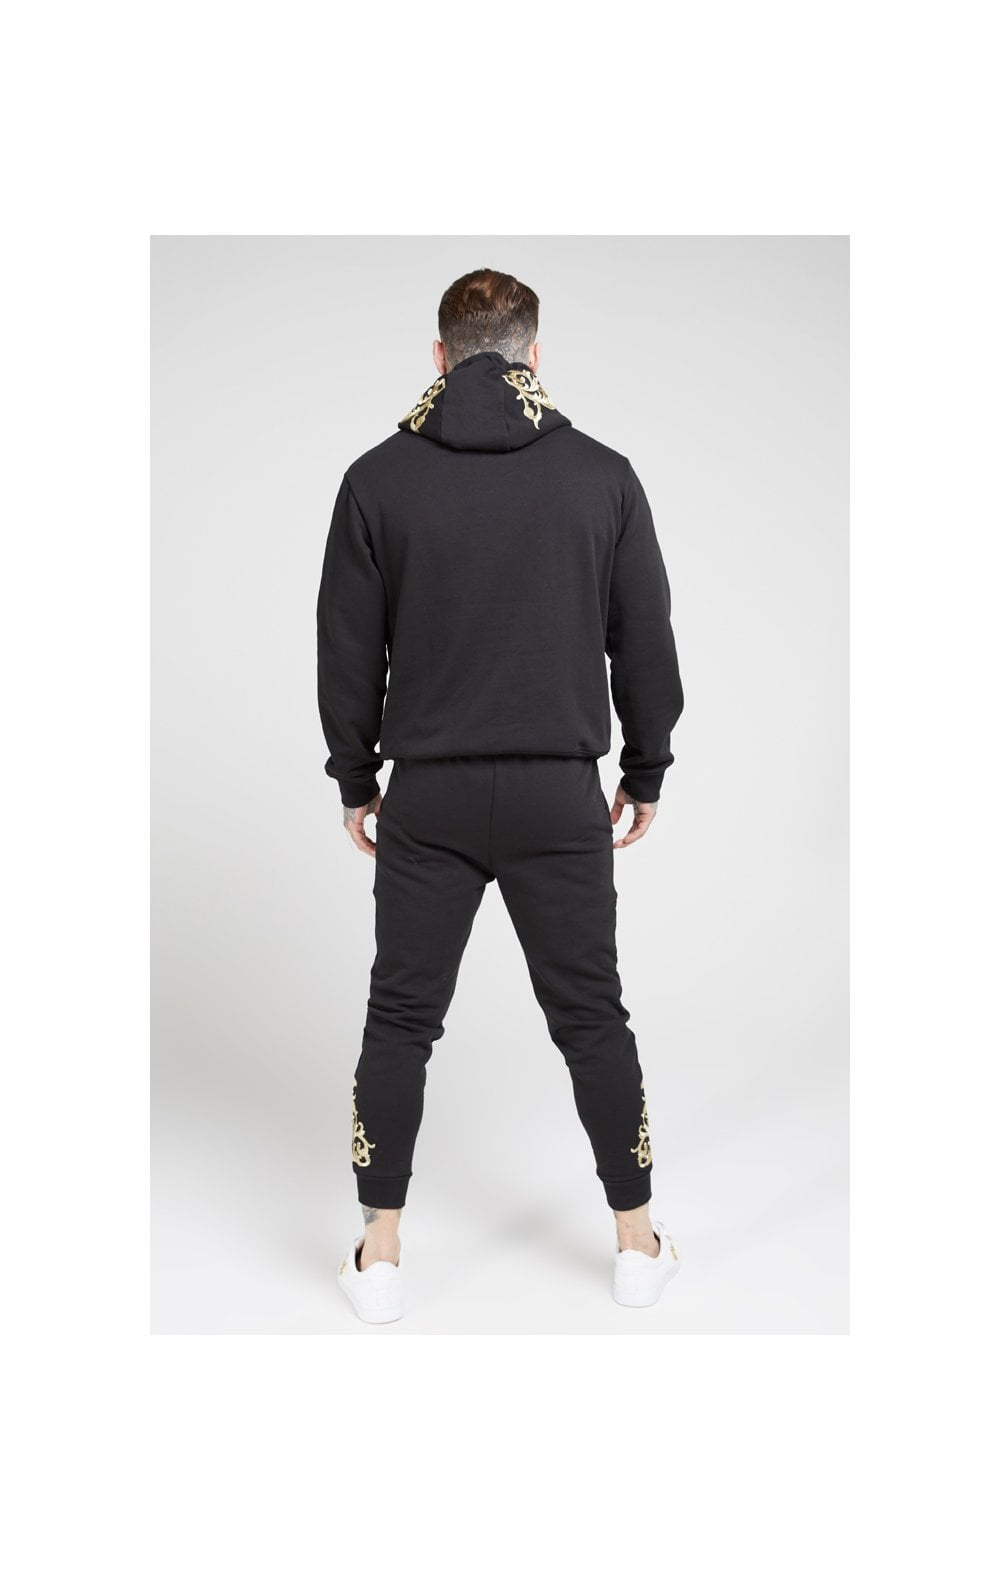 Load image into Gallery viewer, SikSilk Overhead Hoodie – Jet Black & Gold (5)